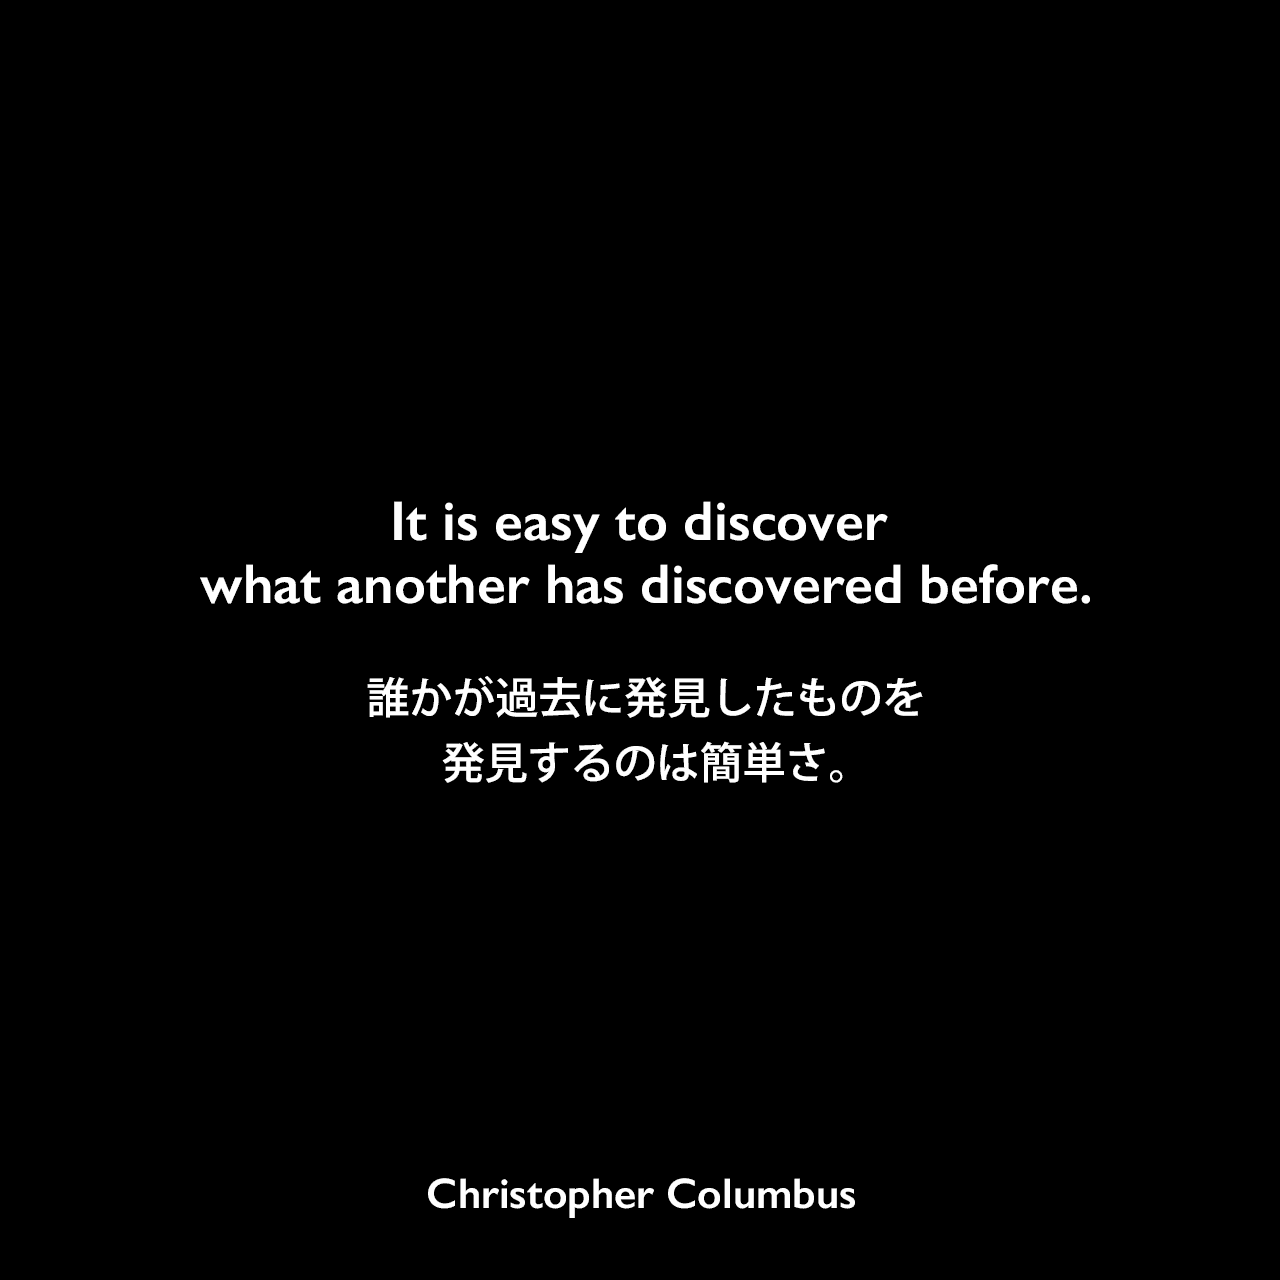 It is easy to discover what another has discovered before.誰かが過去に発見したものを発見するのは簡単さ。Christopher Columbus